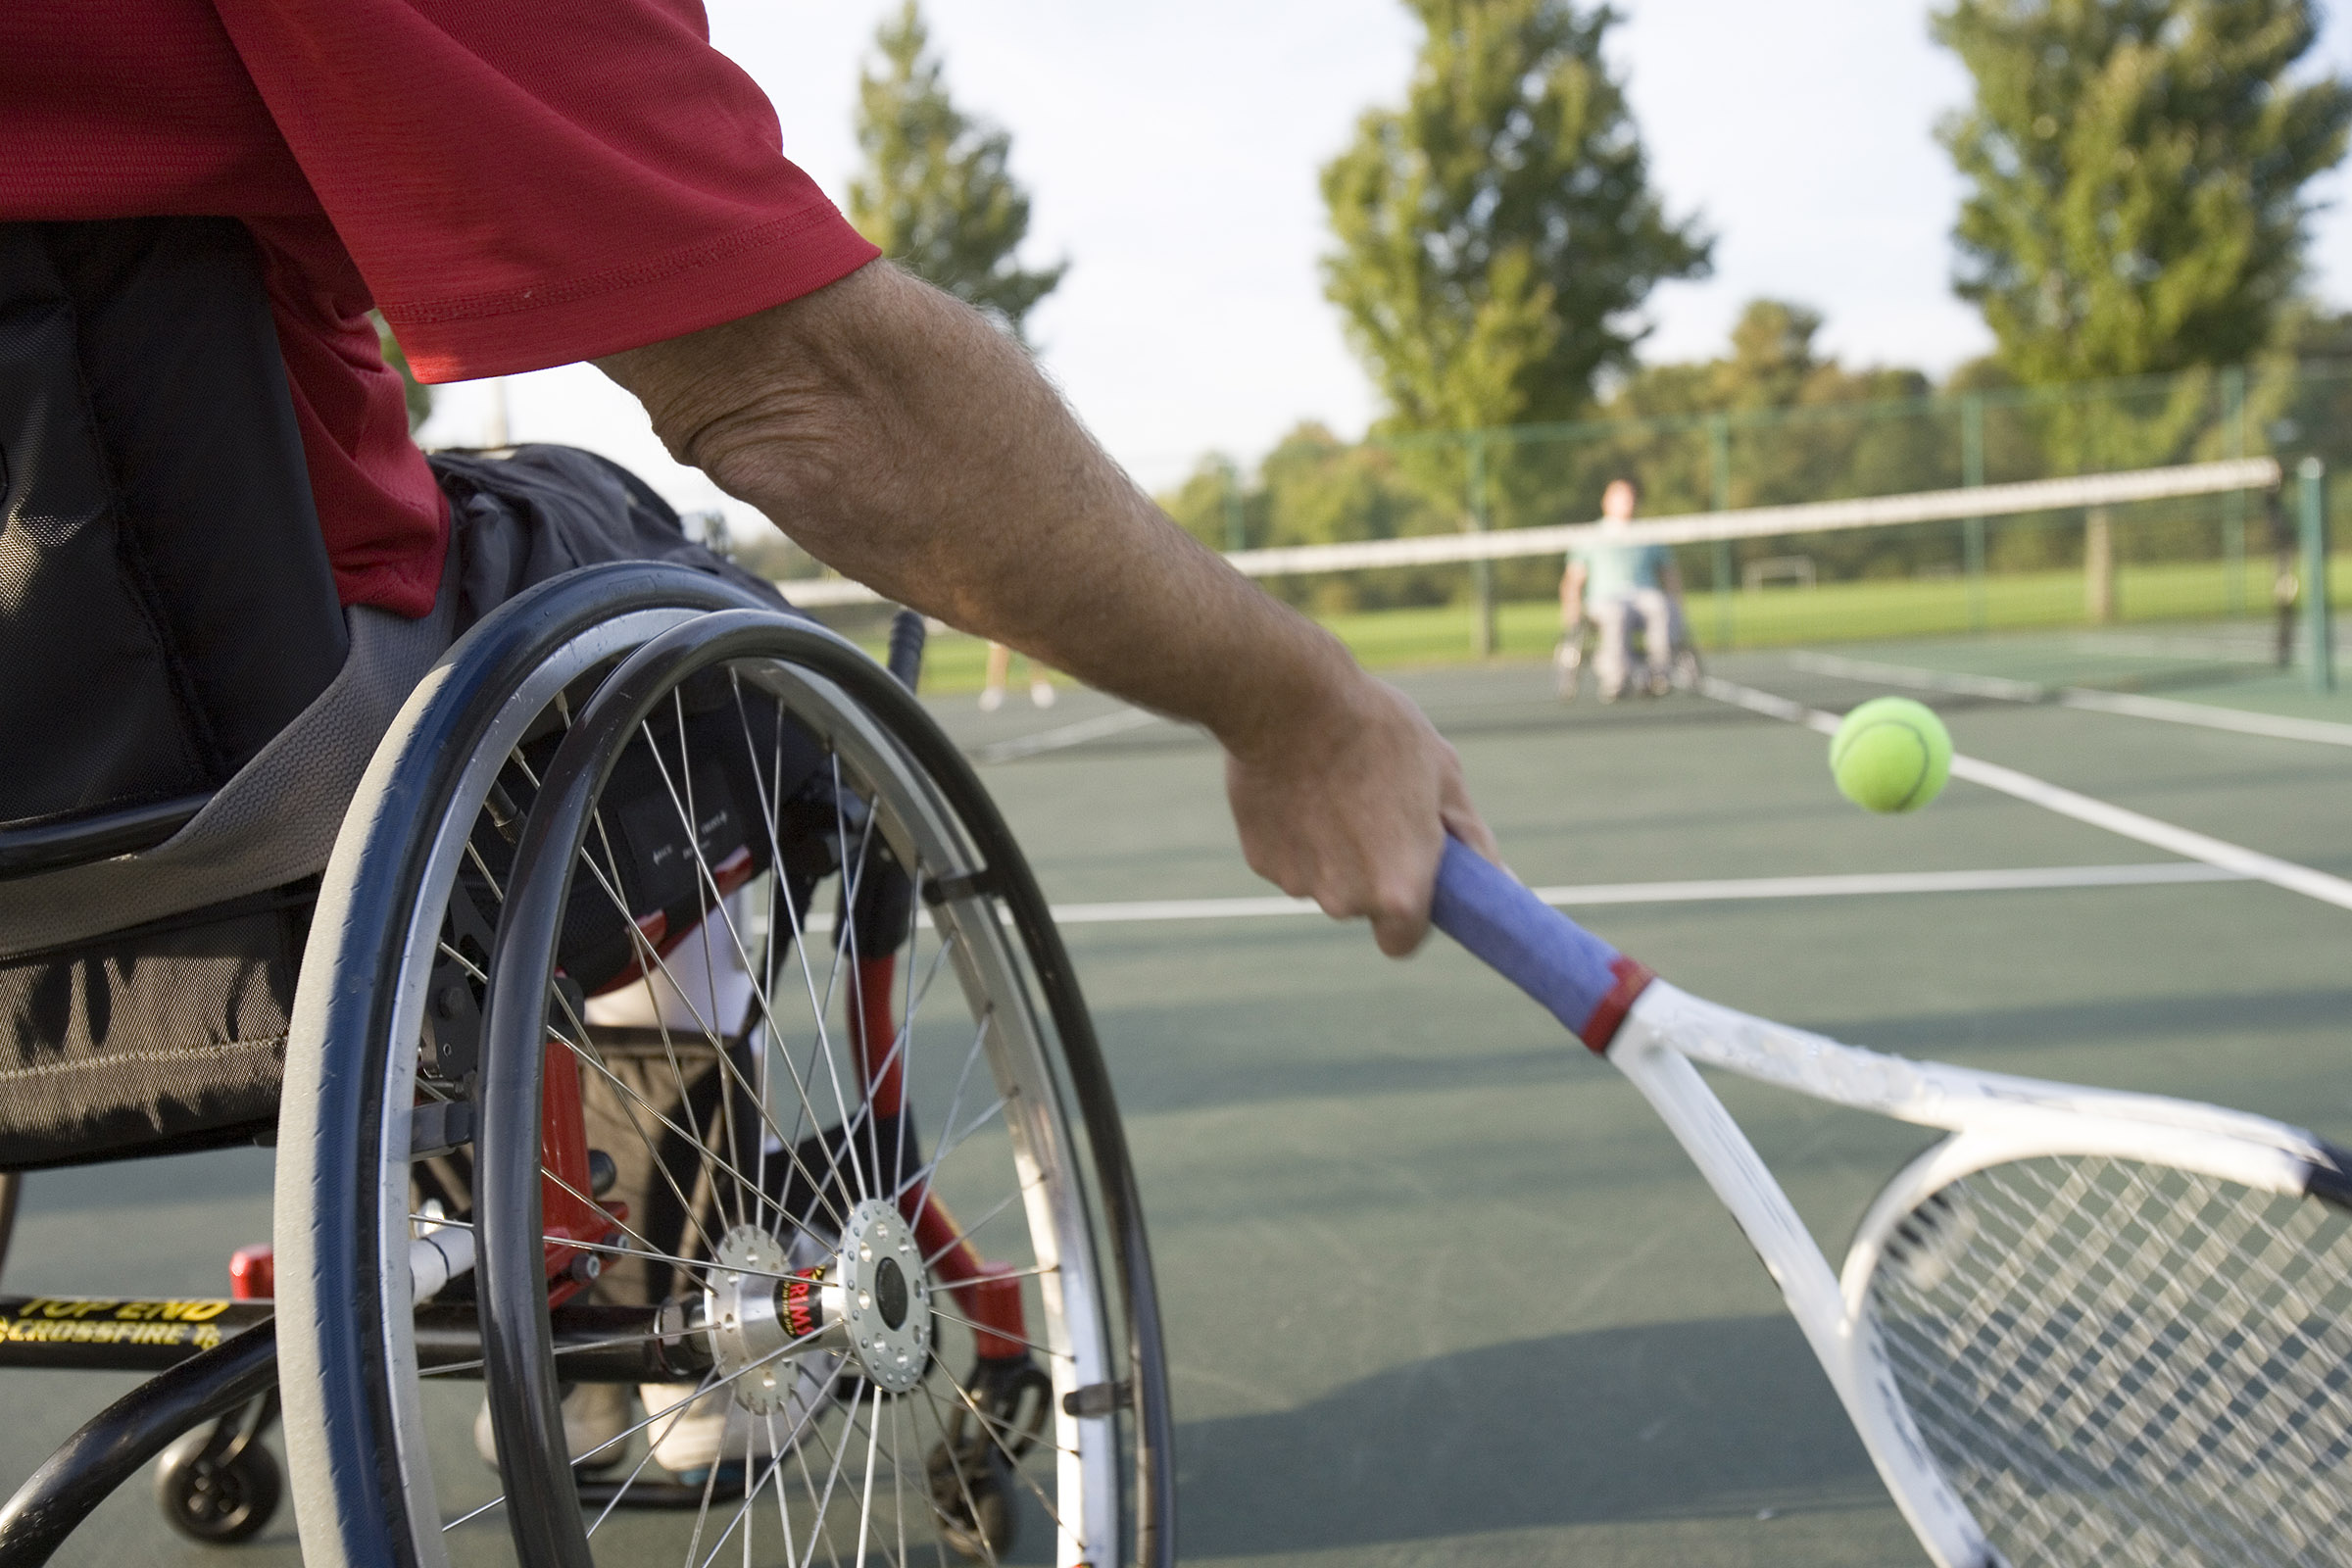 Get fit on the sports courts